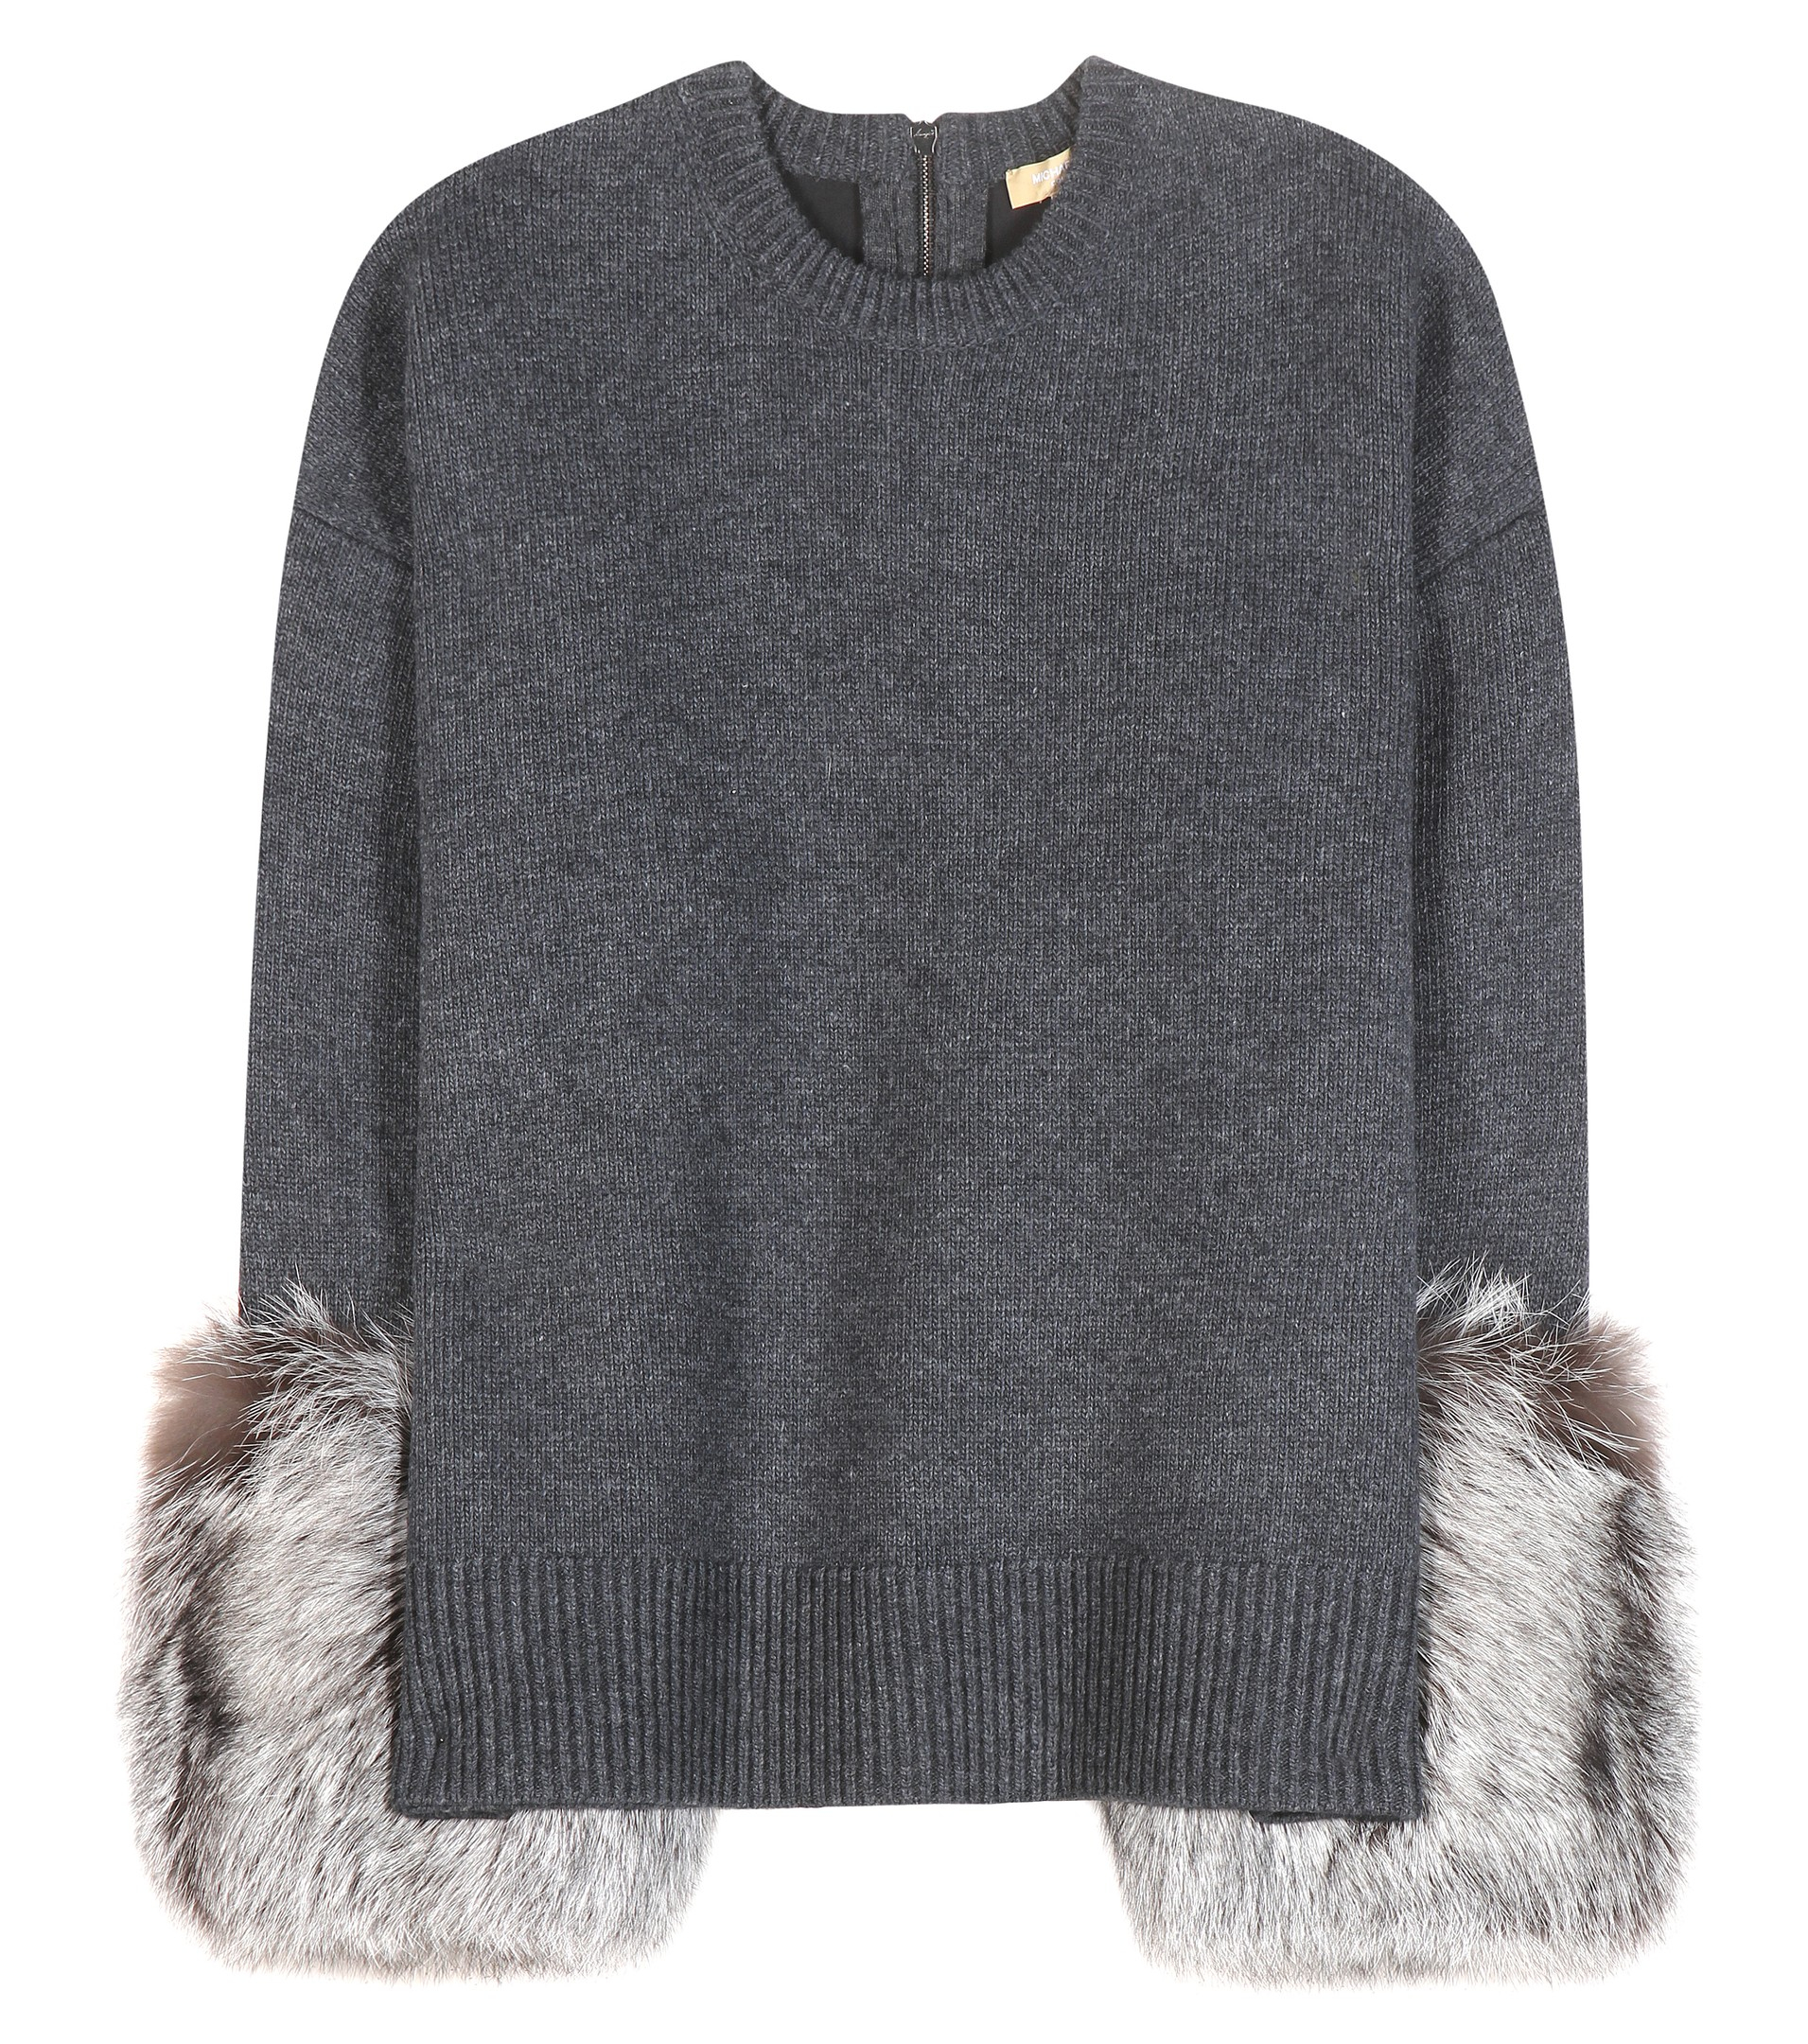 Michael kors Sweater With Furtrim Cuffs in Gray  Lyst